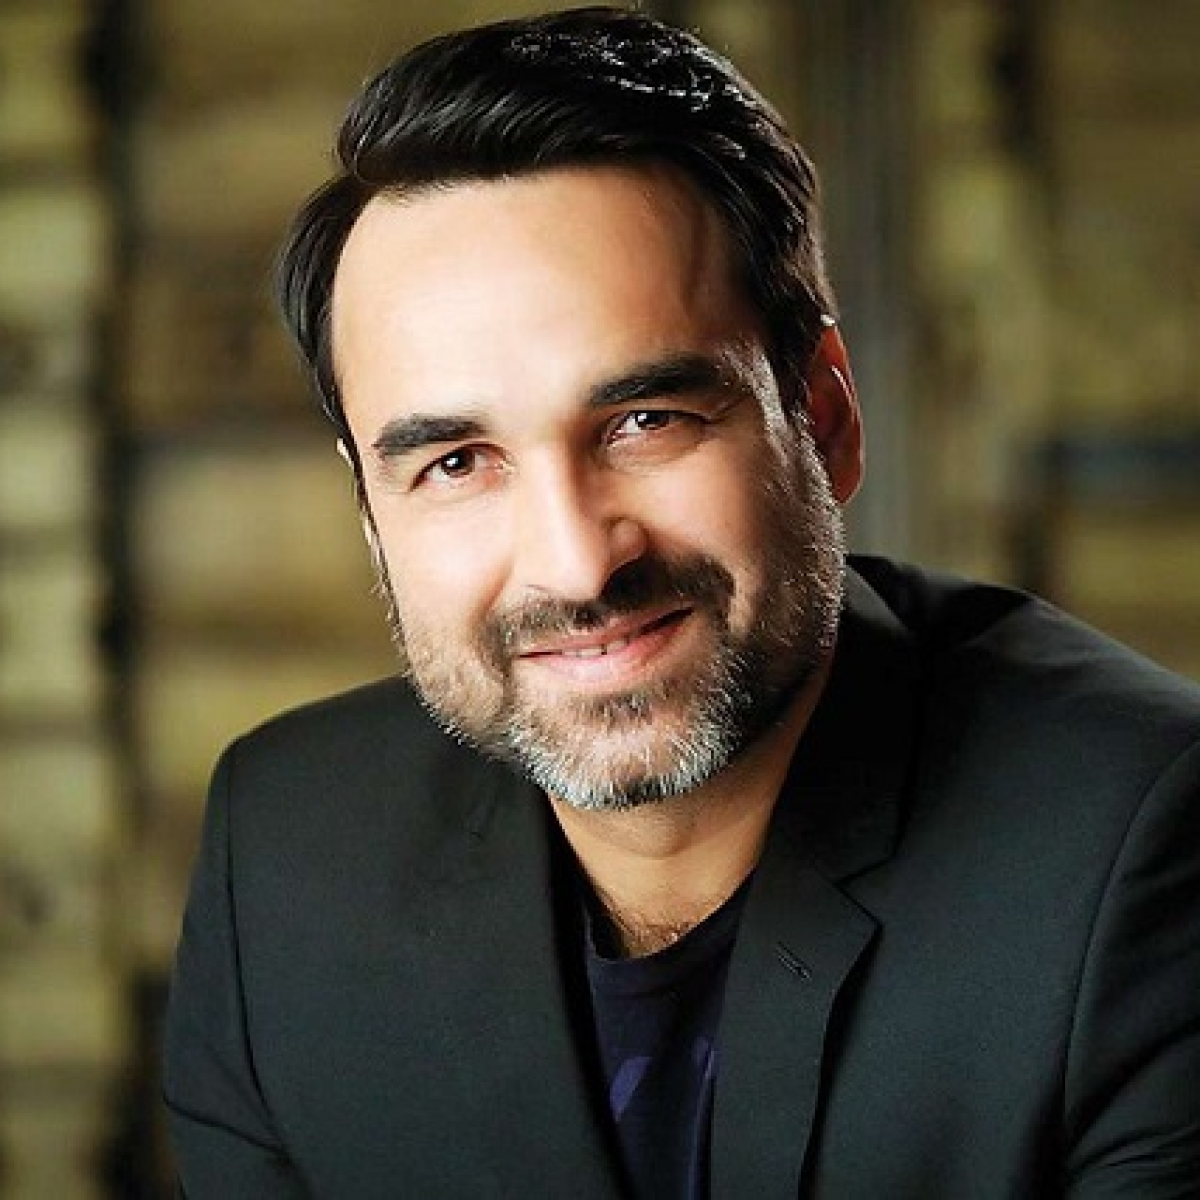 'Some of these are actually good': Pankaj Tripathi on memes made on him